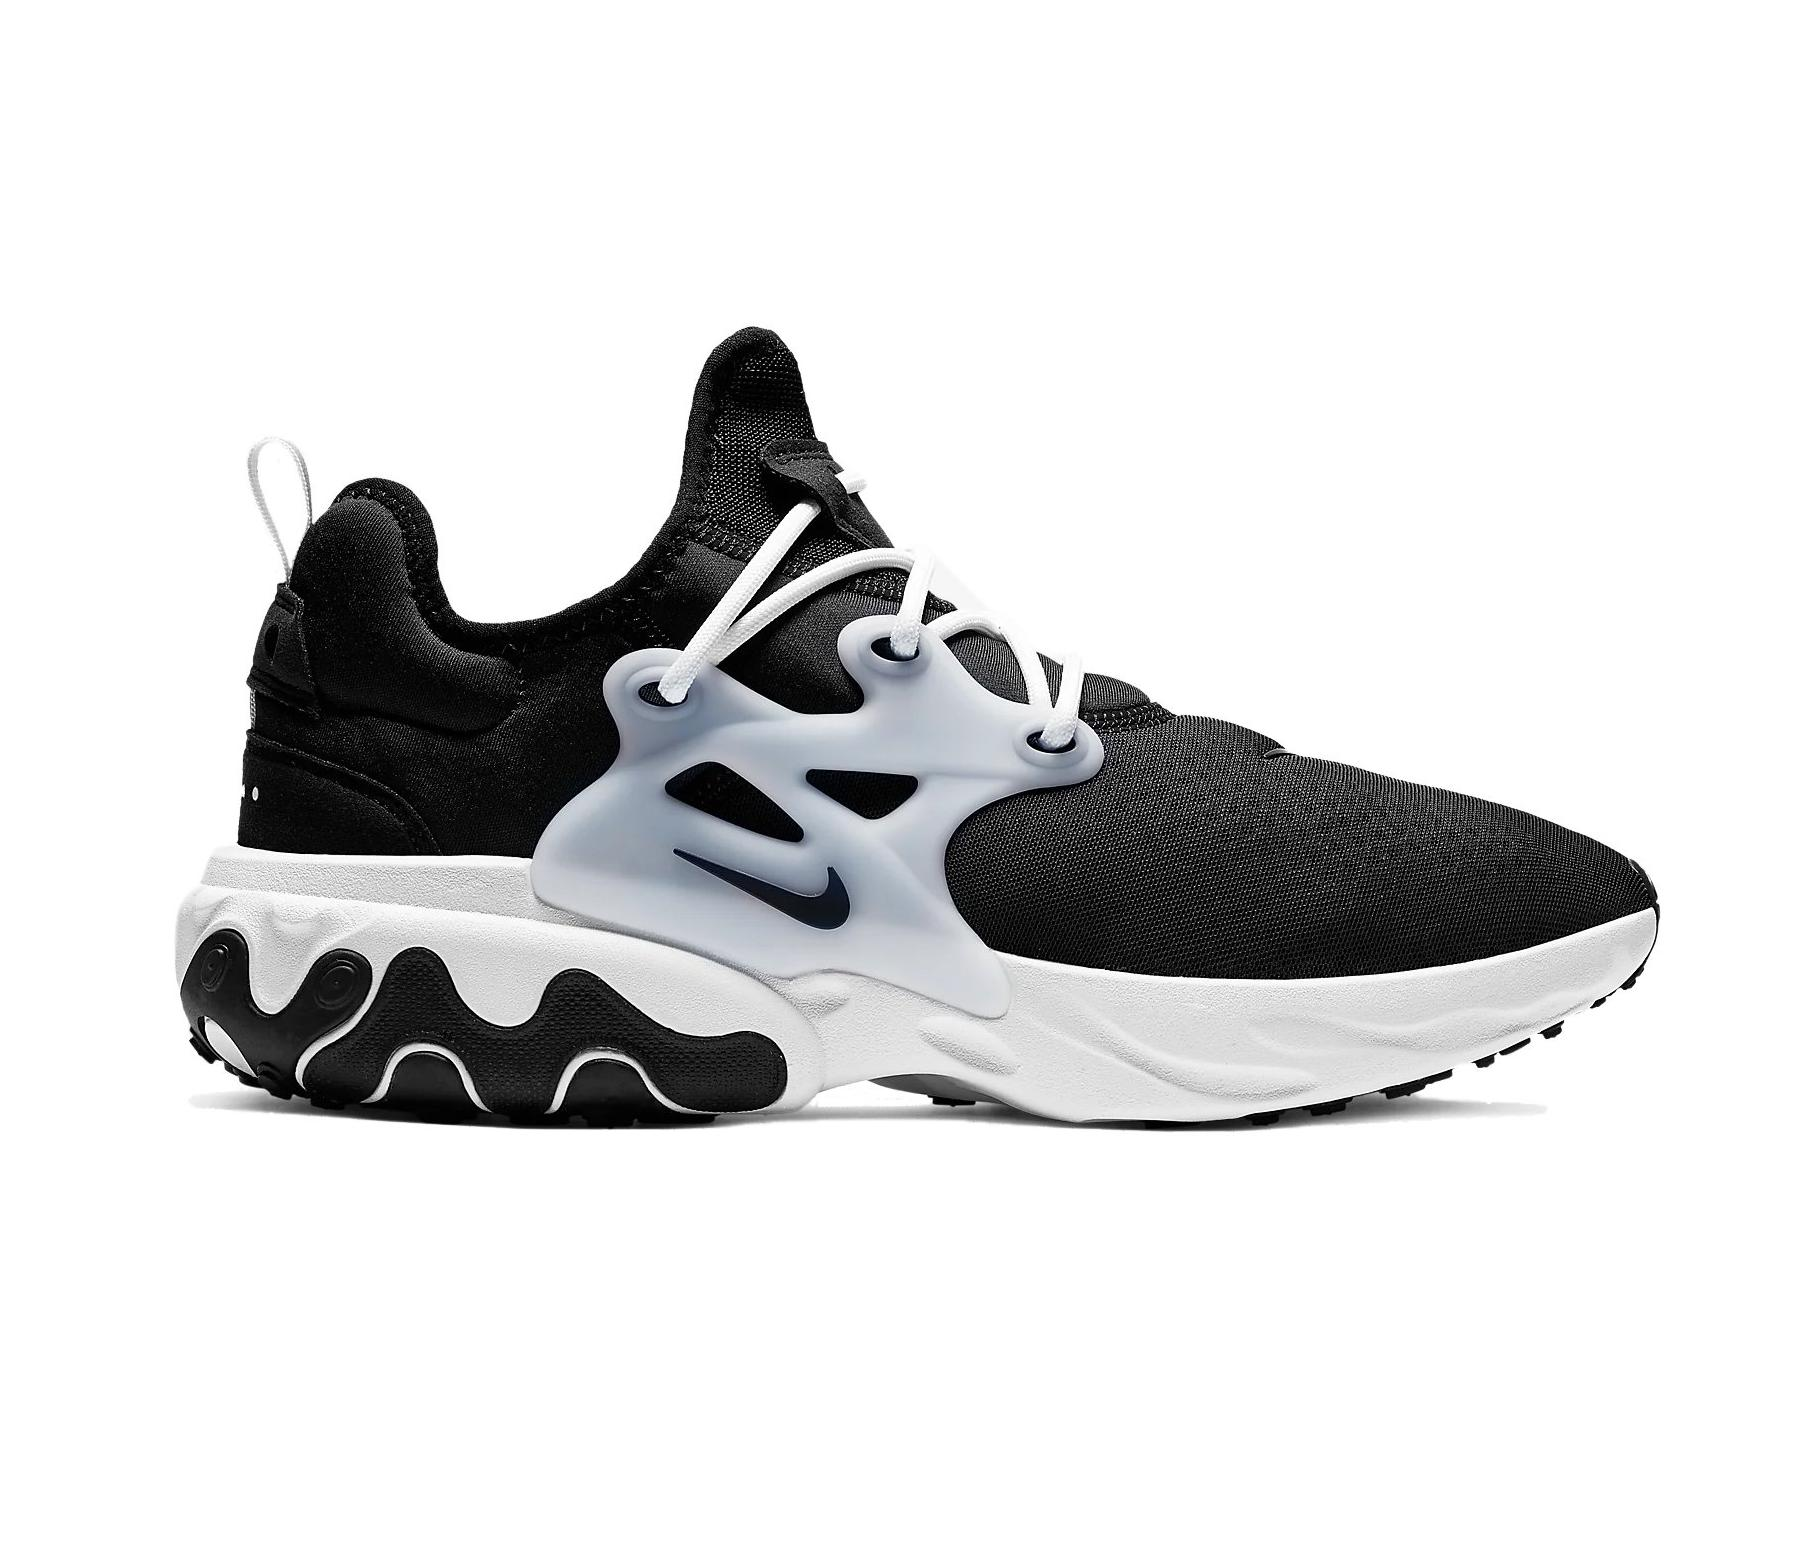 REACT PRESTO - AV2605-003 MENS FOOTWEAR NIKE